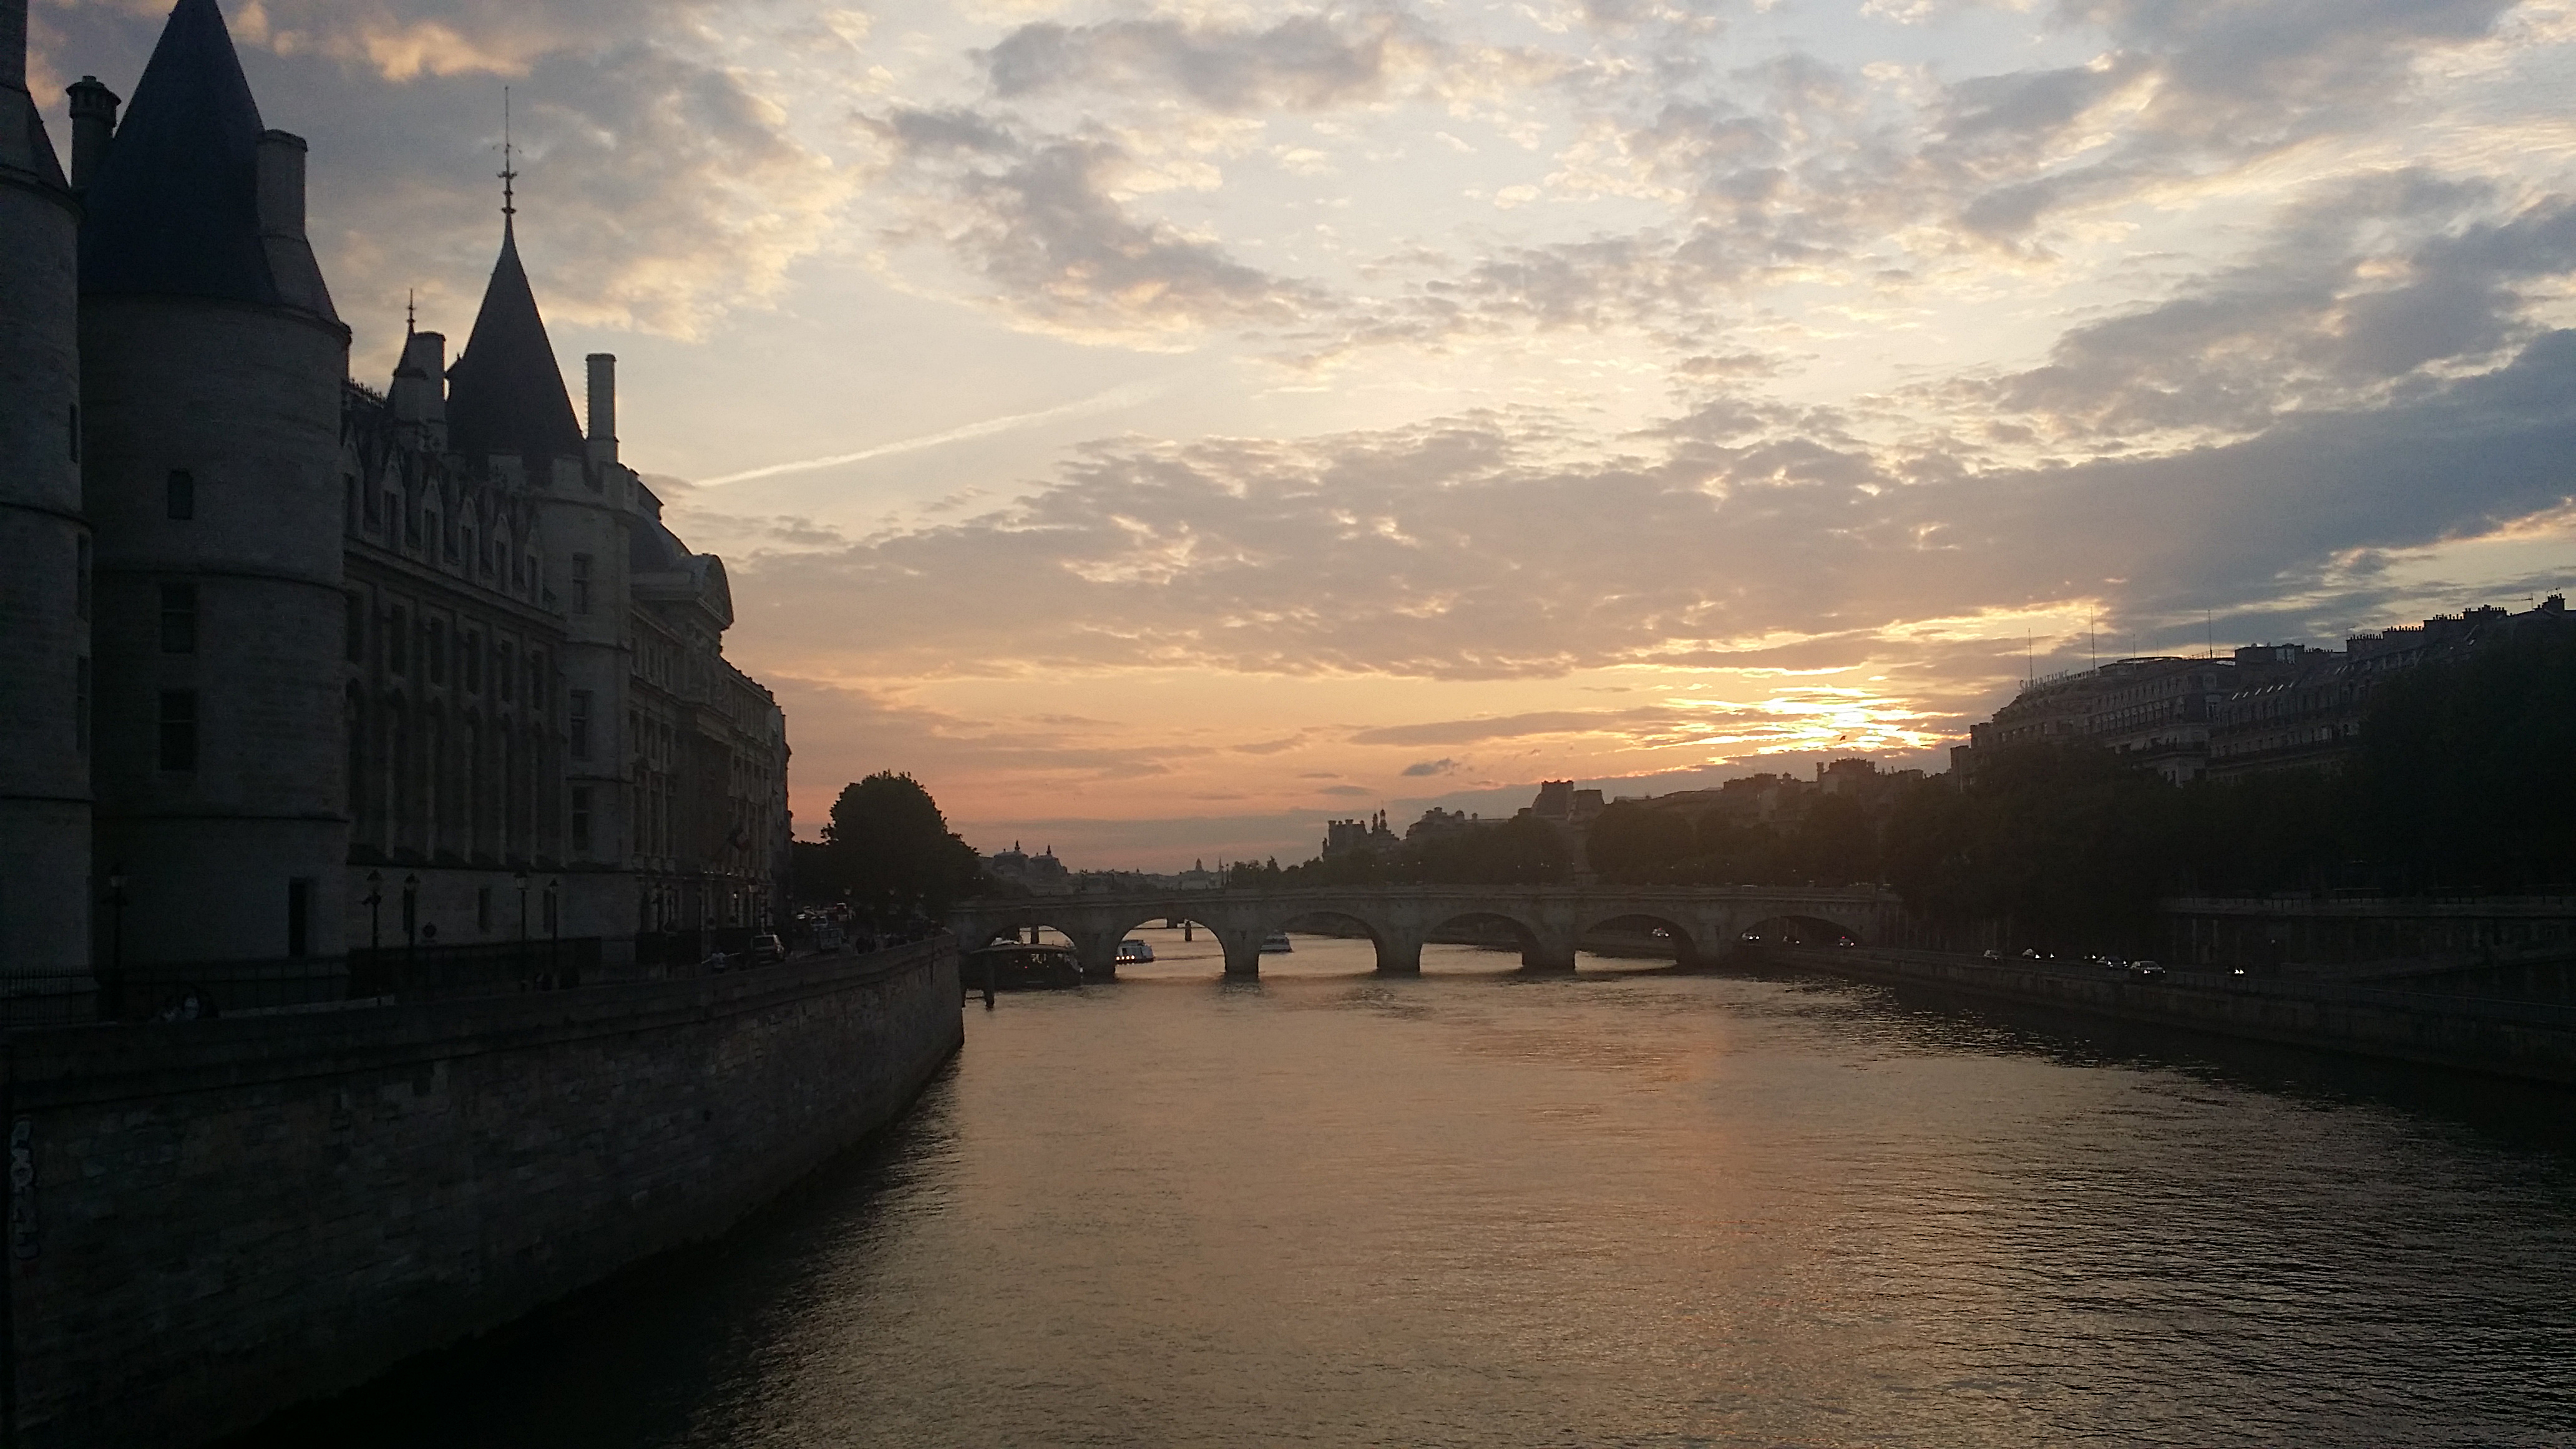 A view over River Seine after sunset